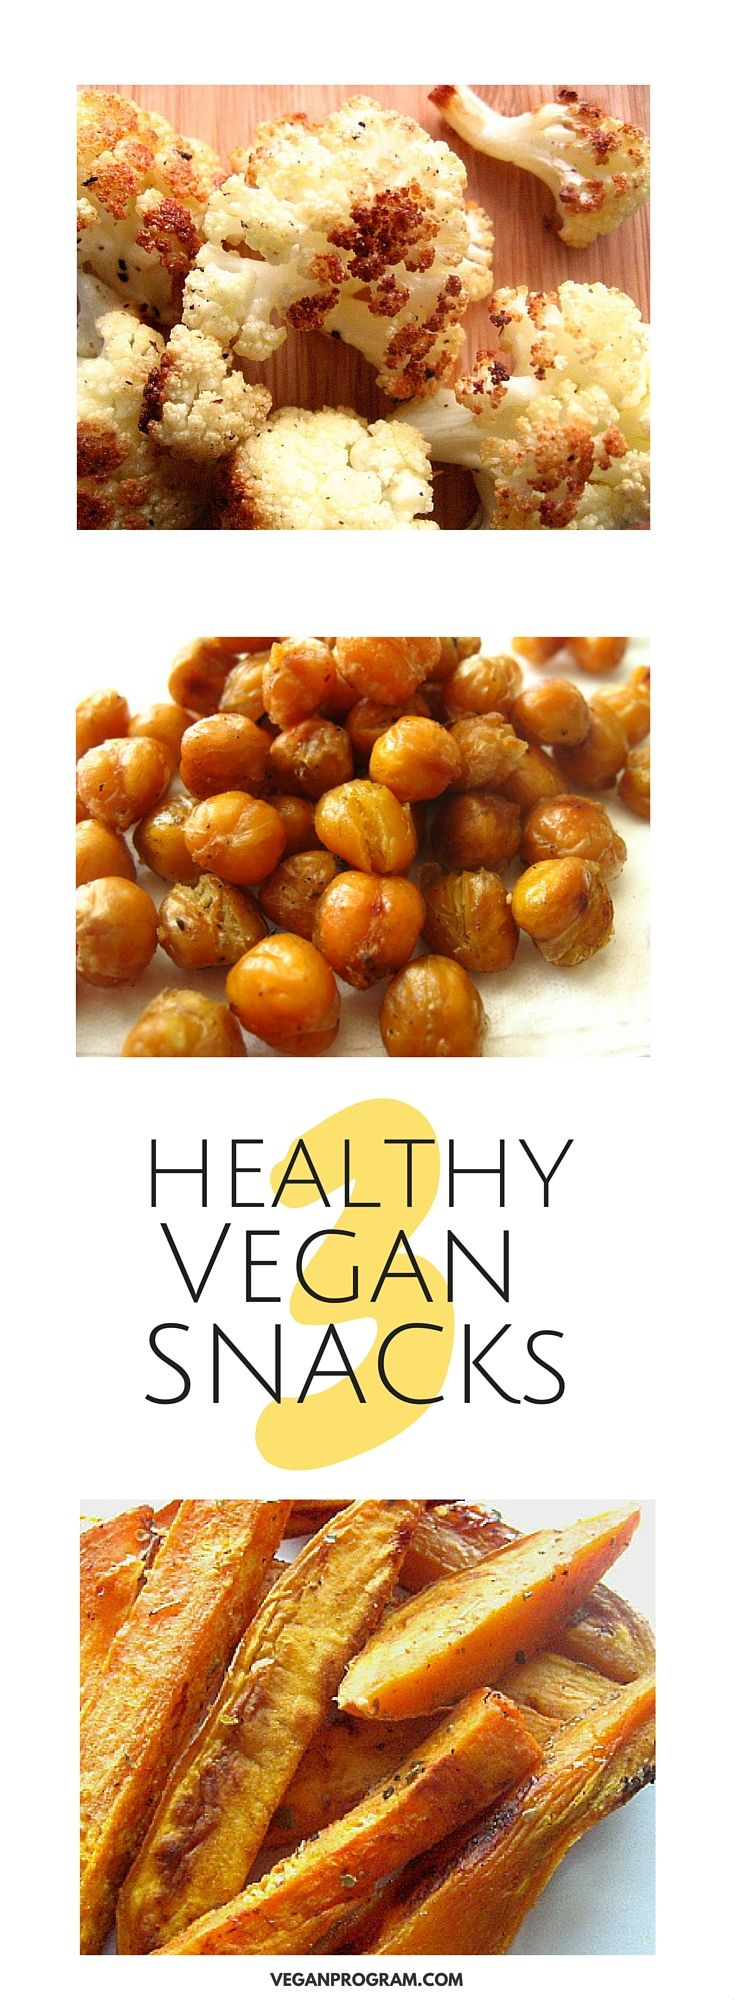 3 Insanely Simple And Delicious Vegan Snacks! Cauliflower Popcorn, Crispy Roasted Chickpeas, Sweet Potato Fries. Yum! Click the image for full recipes | veganprogram.com